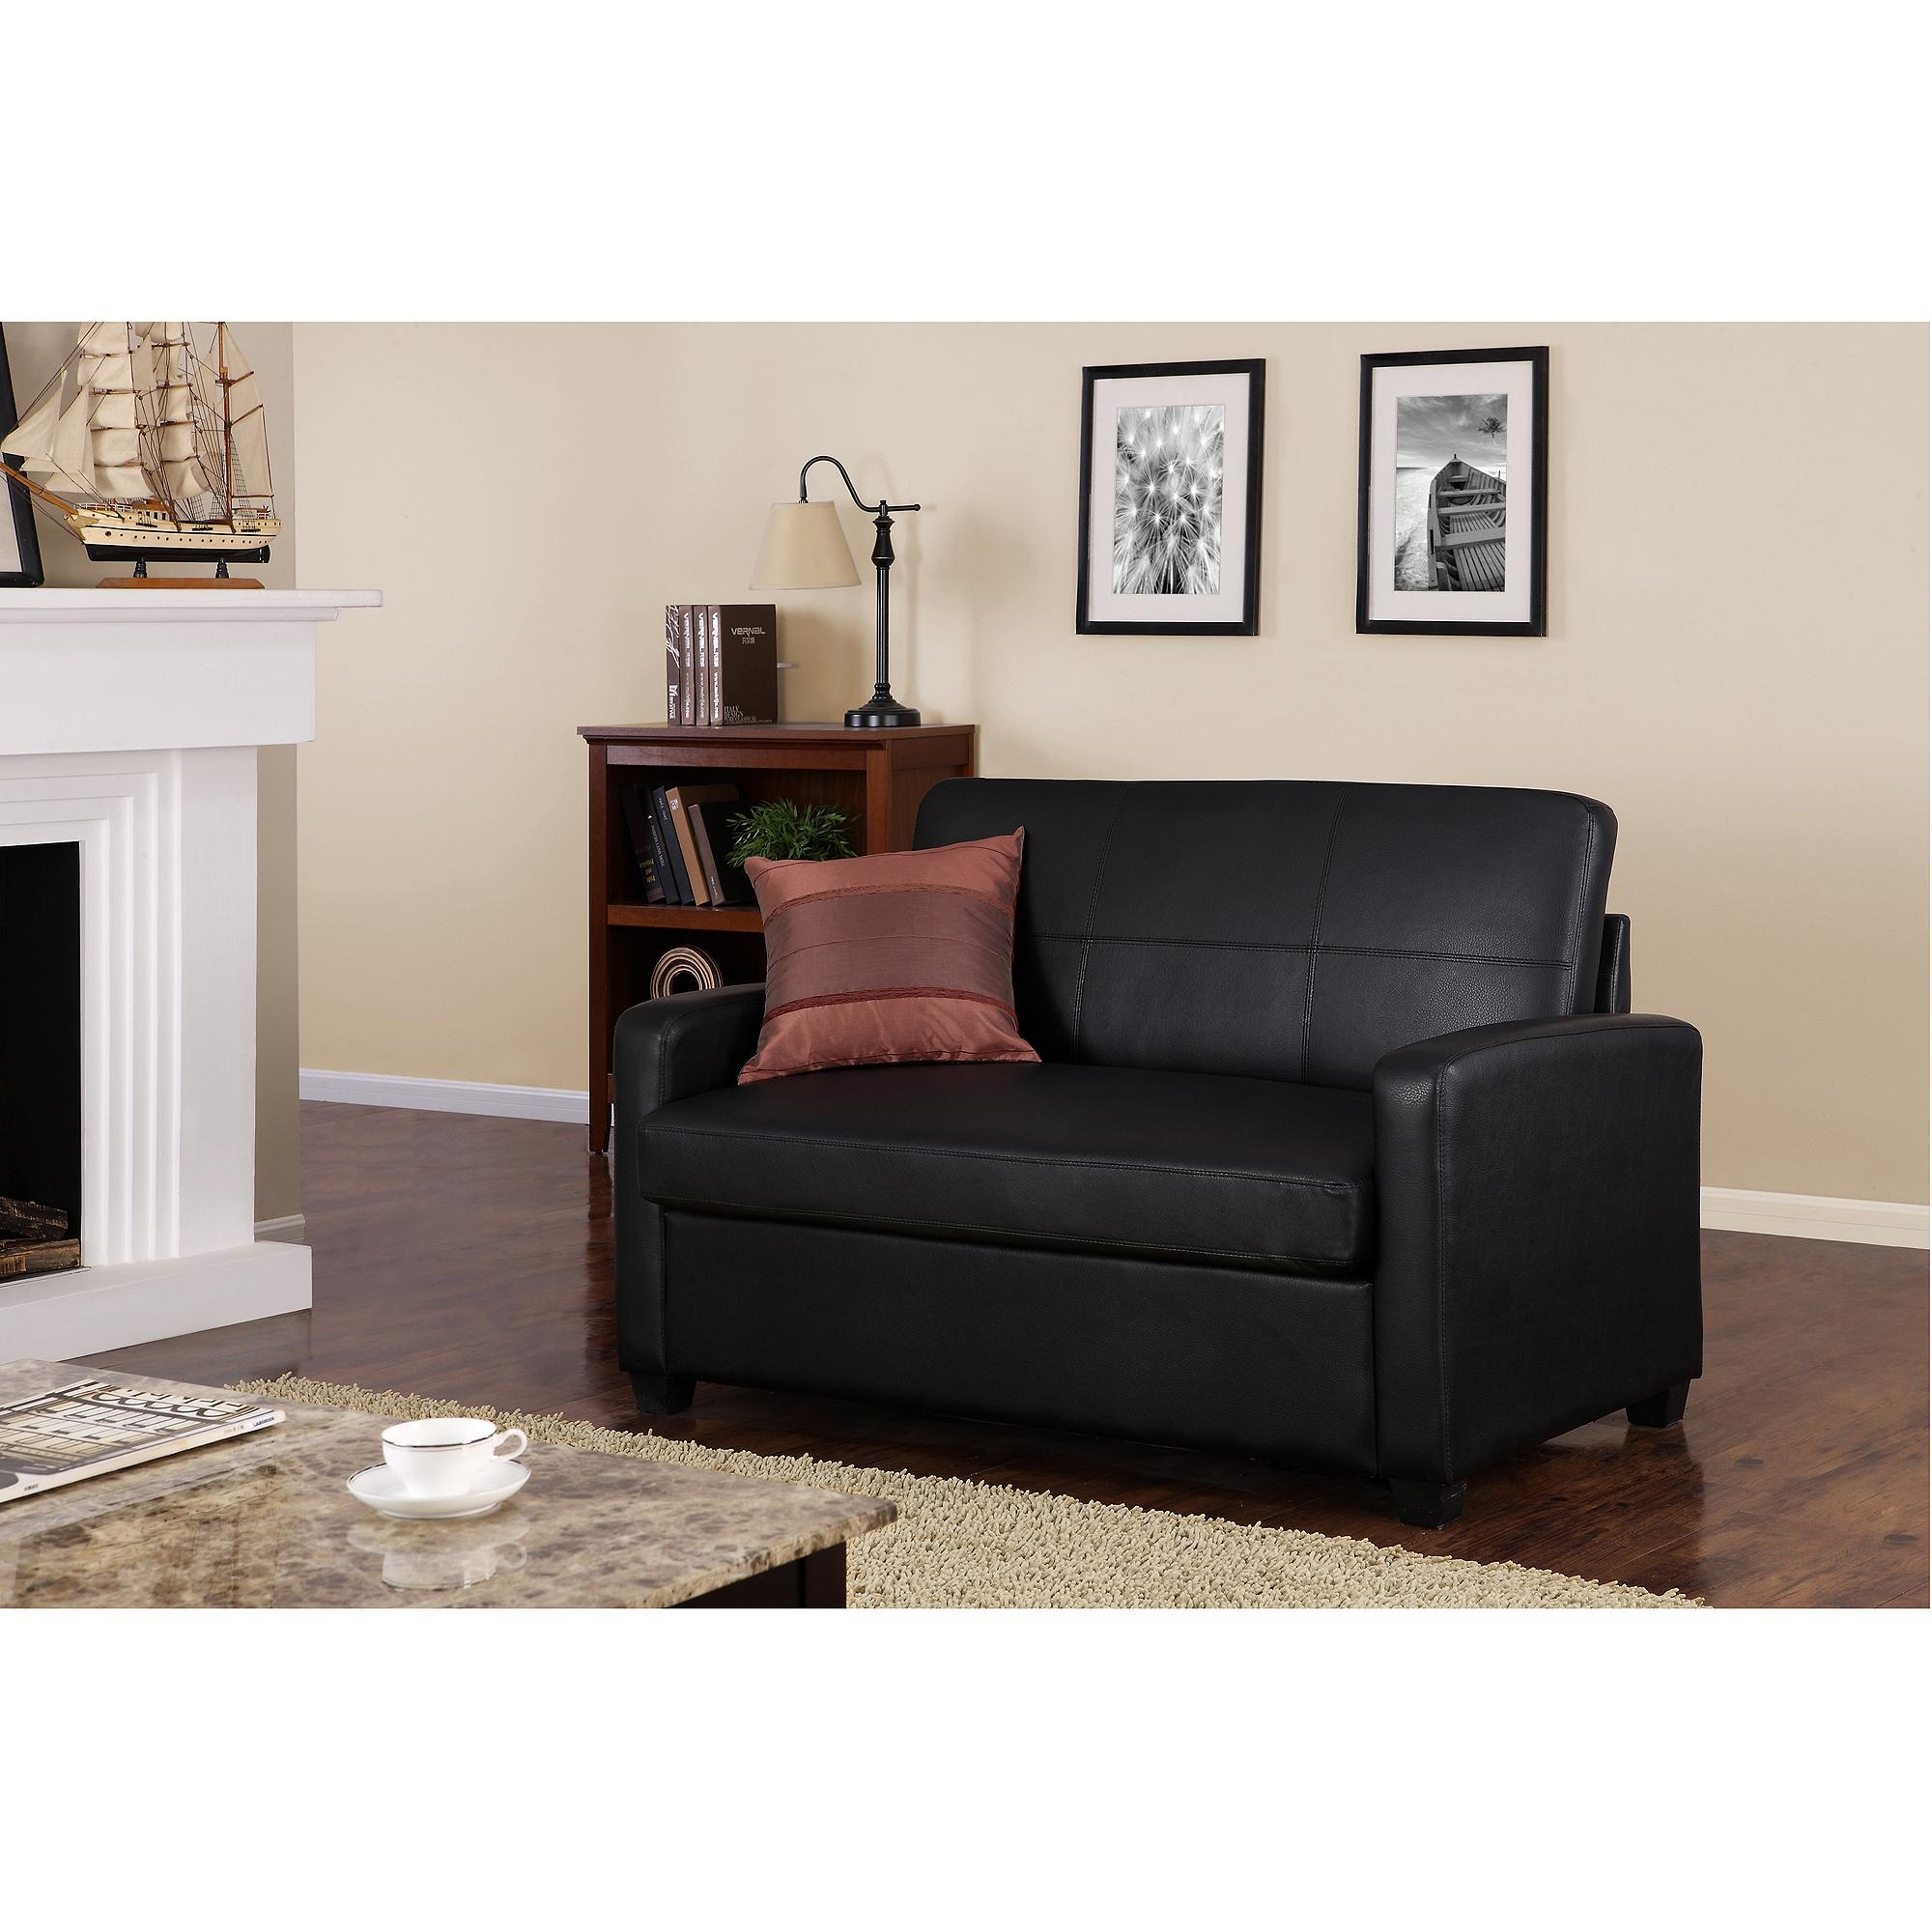 Mainstays Sofa Sleeper | Sofa Gallery | Kengire Pertaining To Mainstay Sofas (Image 18 of 20)